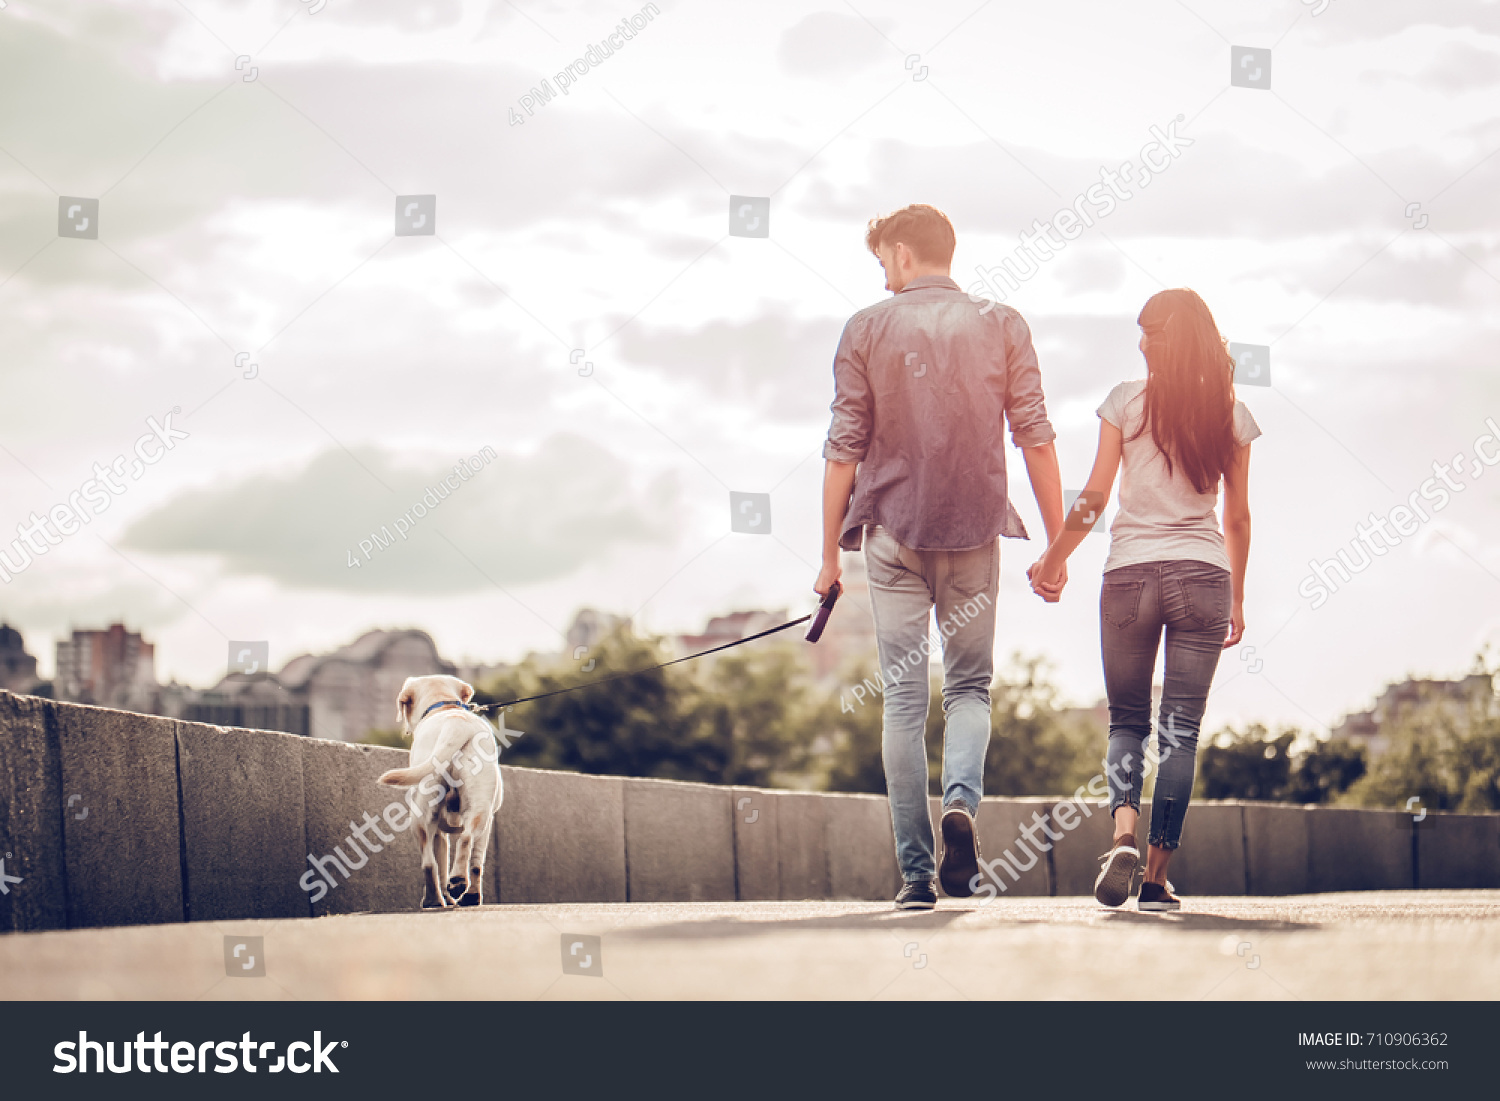 Romantic couple is on a walk in the city with their dog labrador. Beautiful young woman and handsome man are having fun outdoors with golden retriever labrador. #710906362